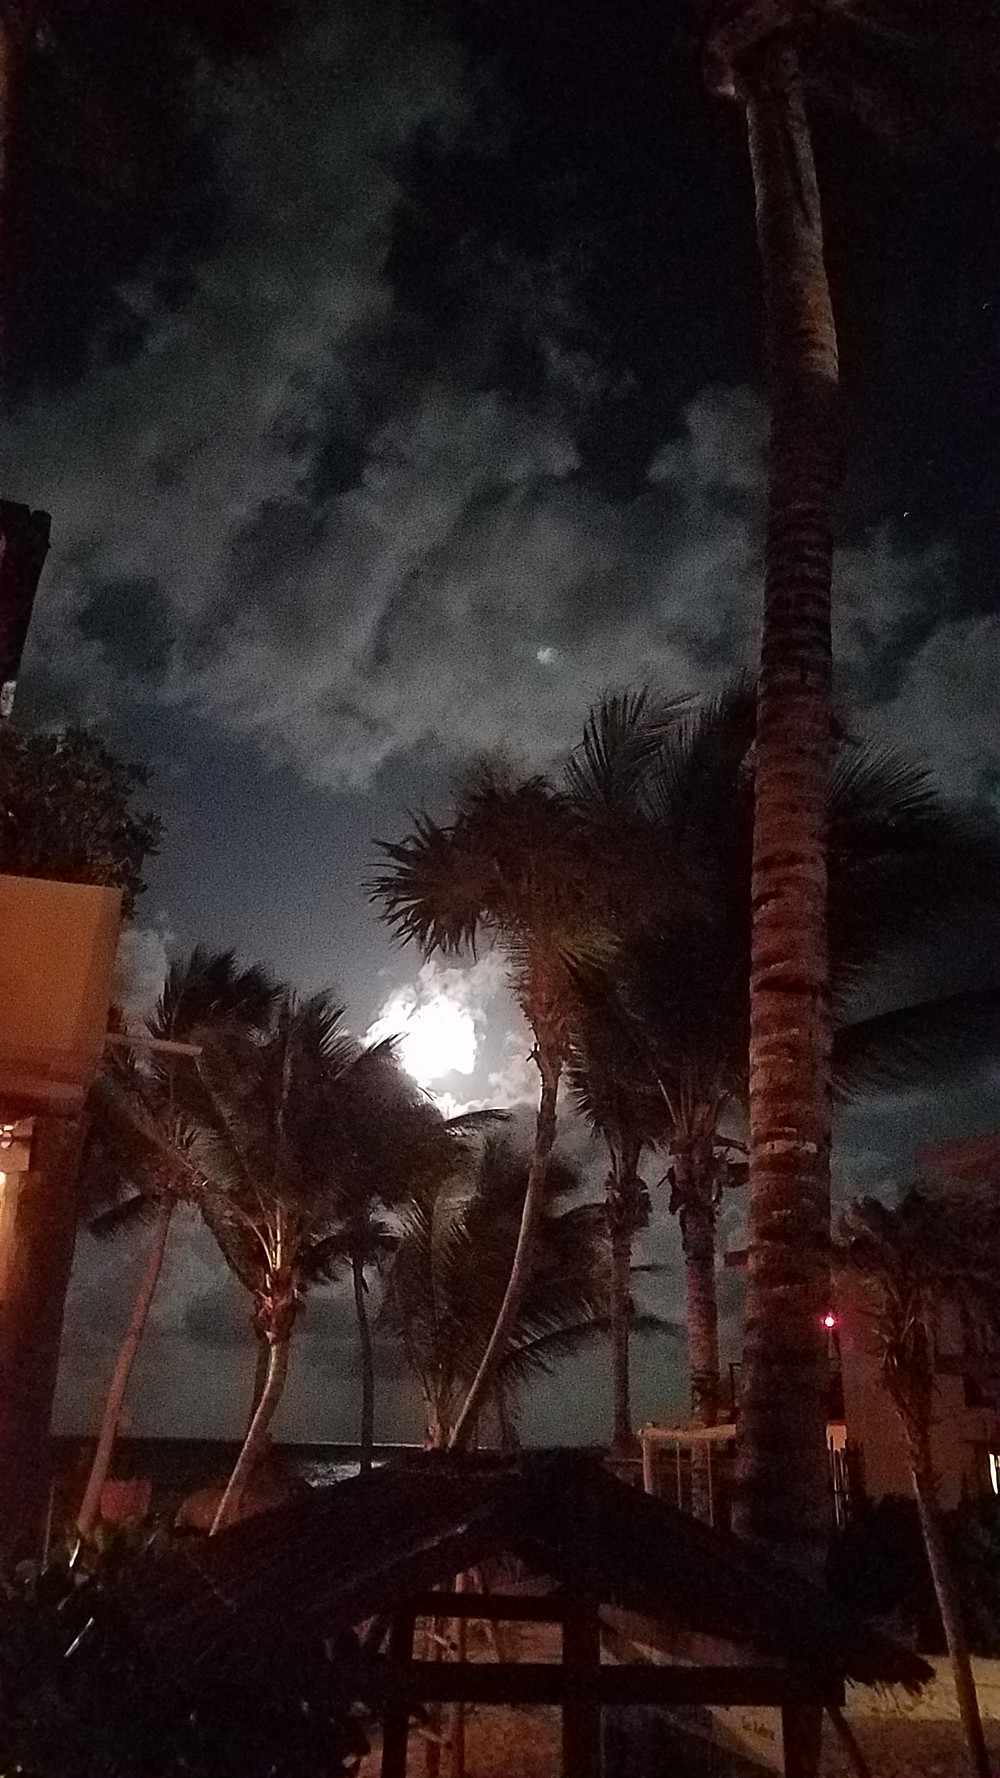 A full moon appears amongst clouds and palm trees on the beach in Tulum